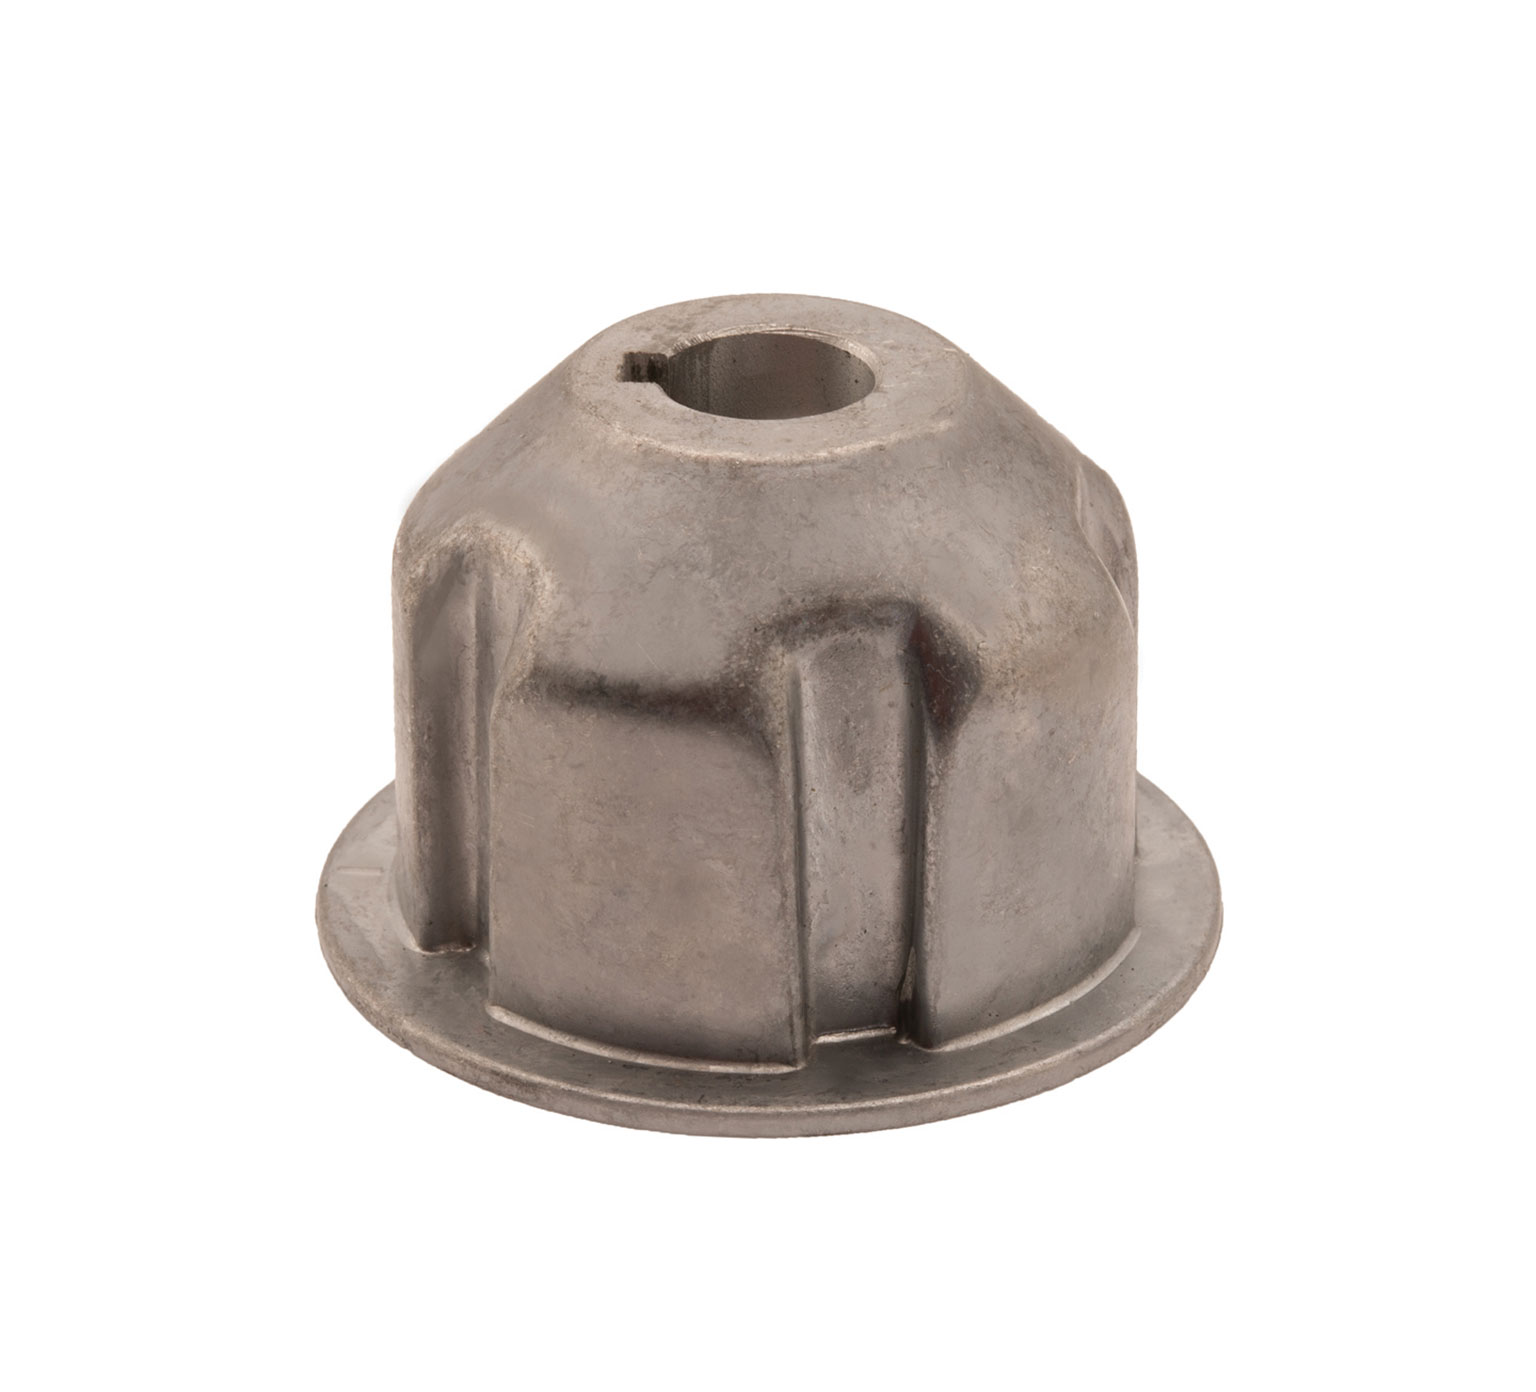 378805 Aluminum Brush Drive Plug - 2.6 x 1.68 in alt 1